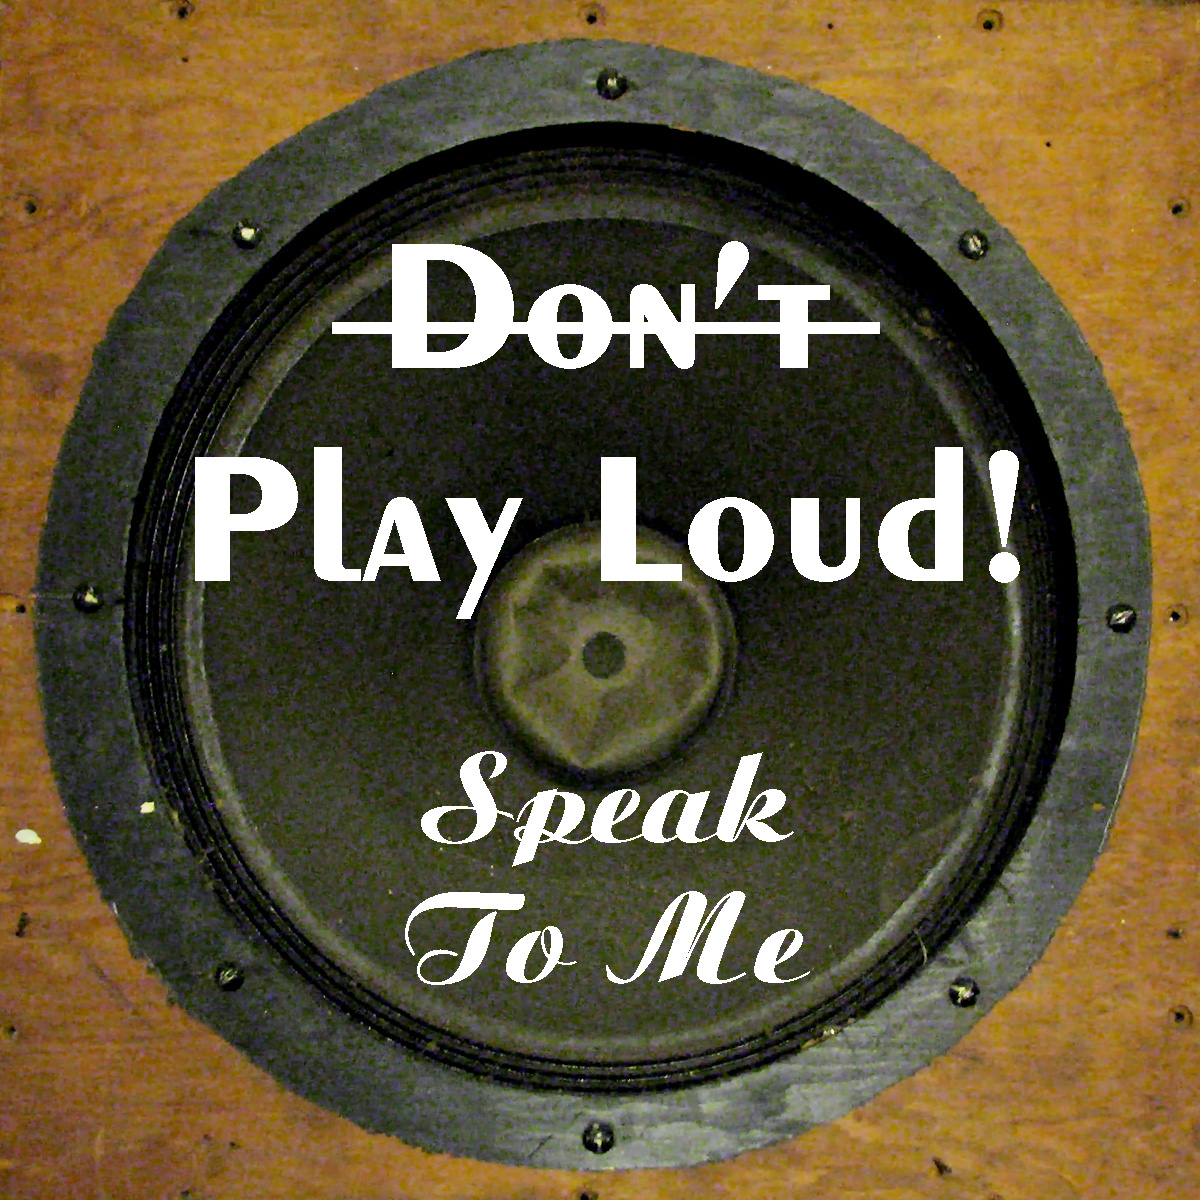 Don't Play Loud!